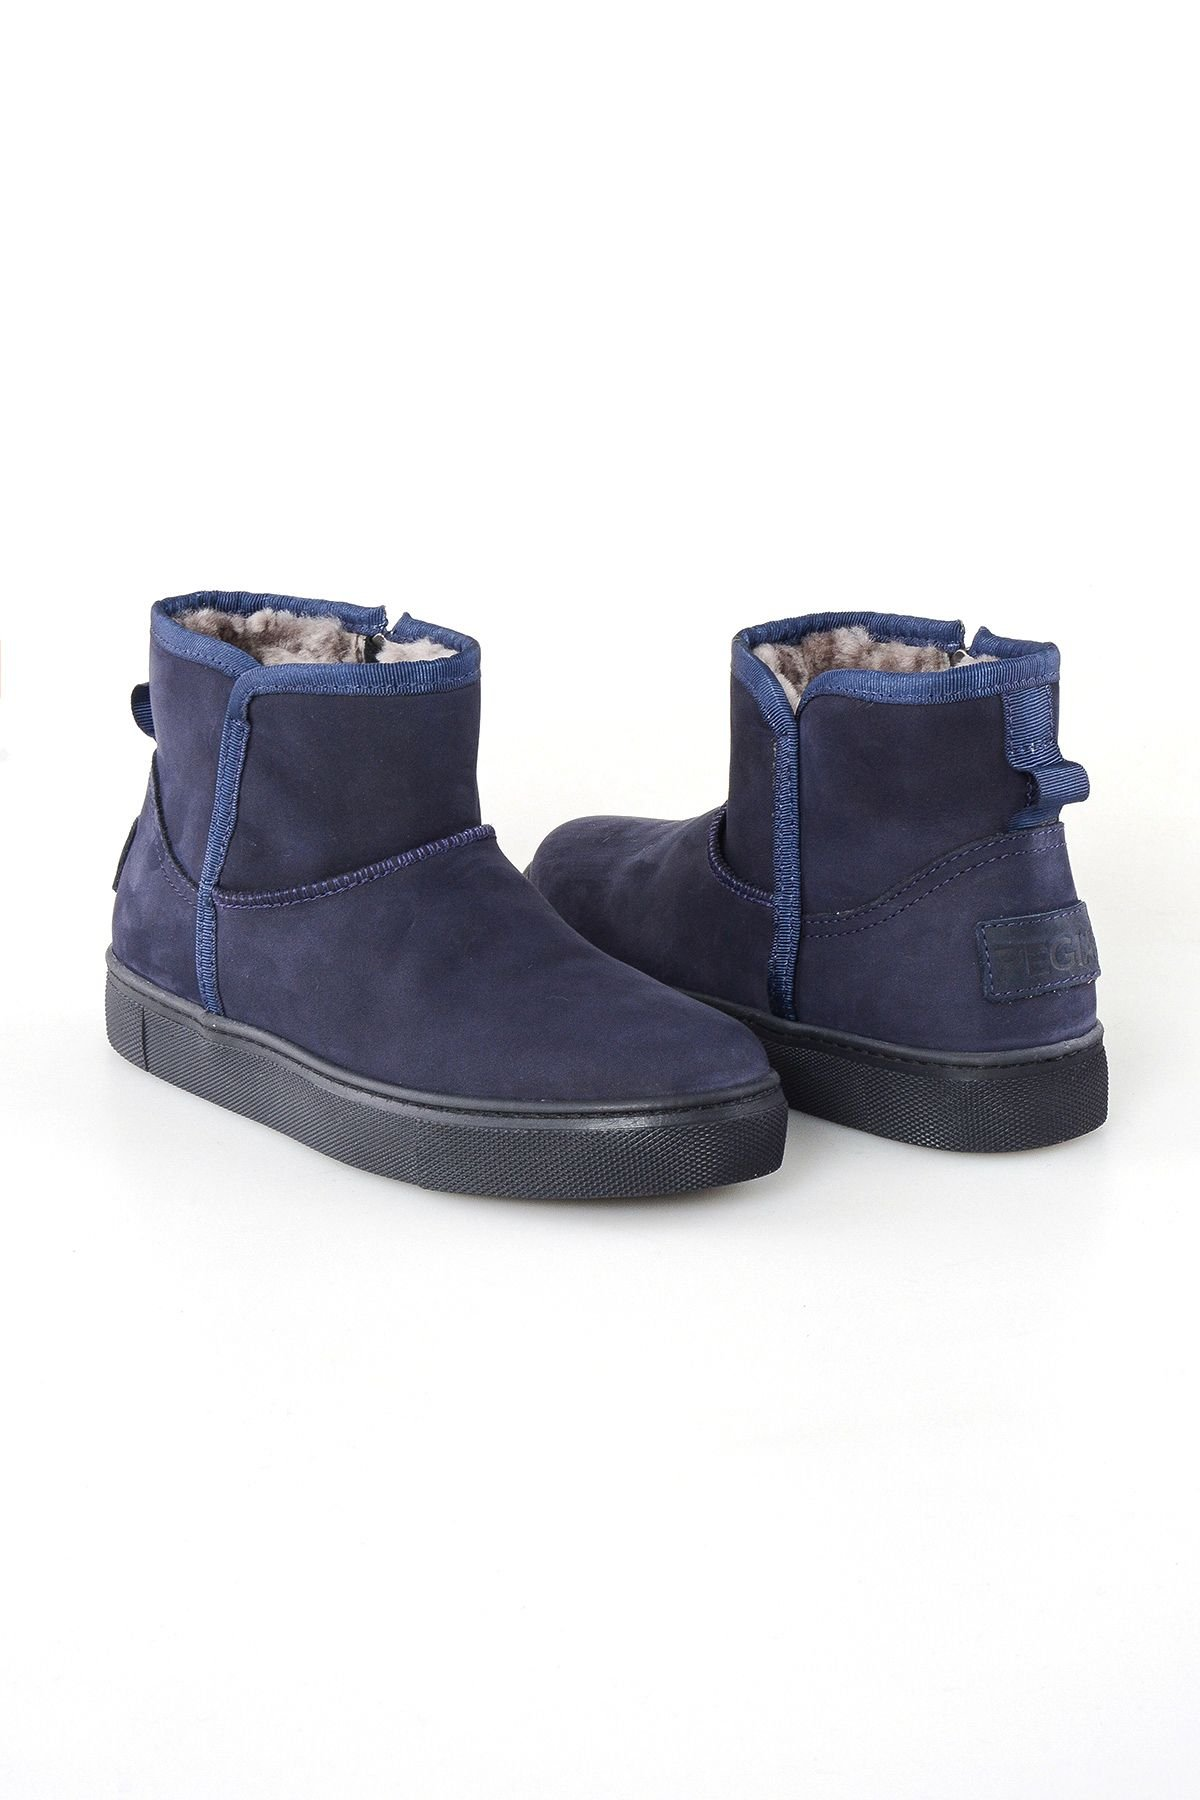 Pegia Women's Boots From Genuine Leather And Sheepskin Fur With A Zip 195010 Navy blue